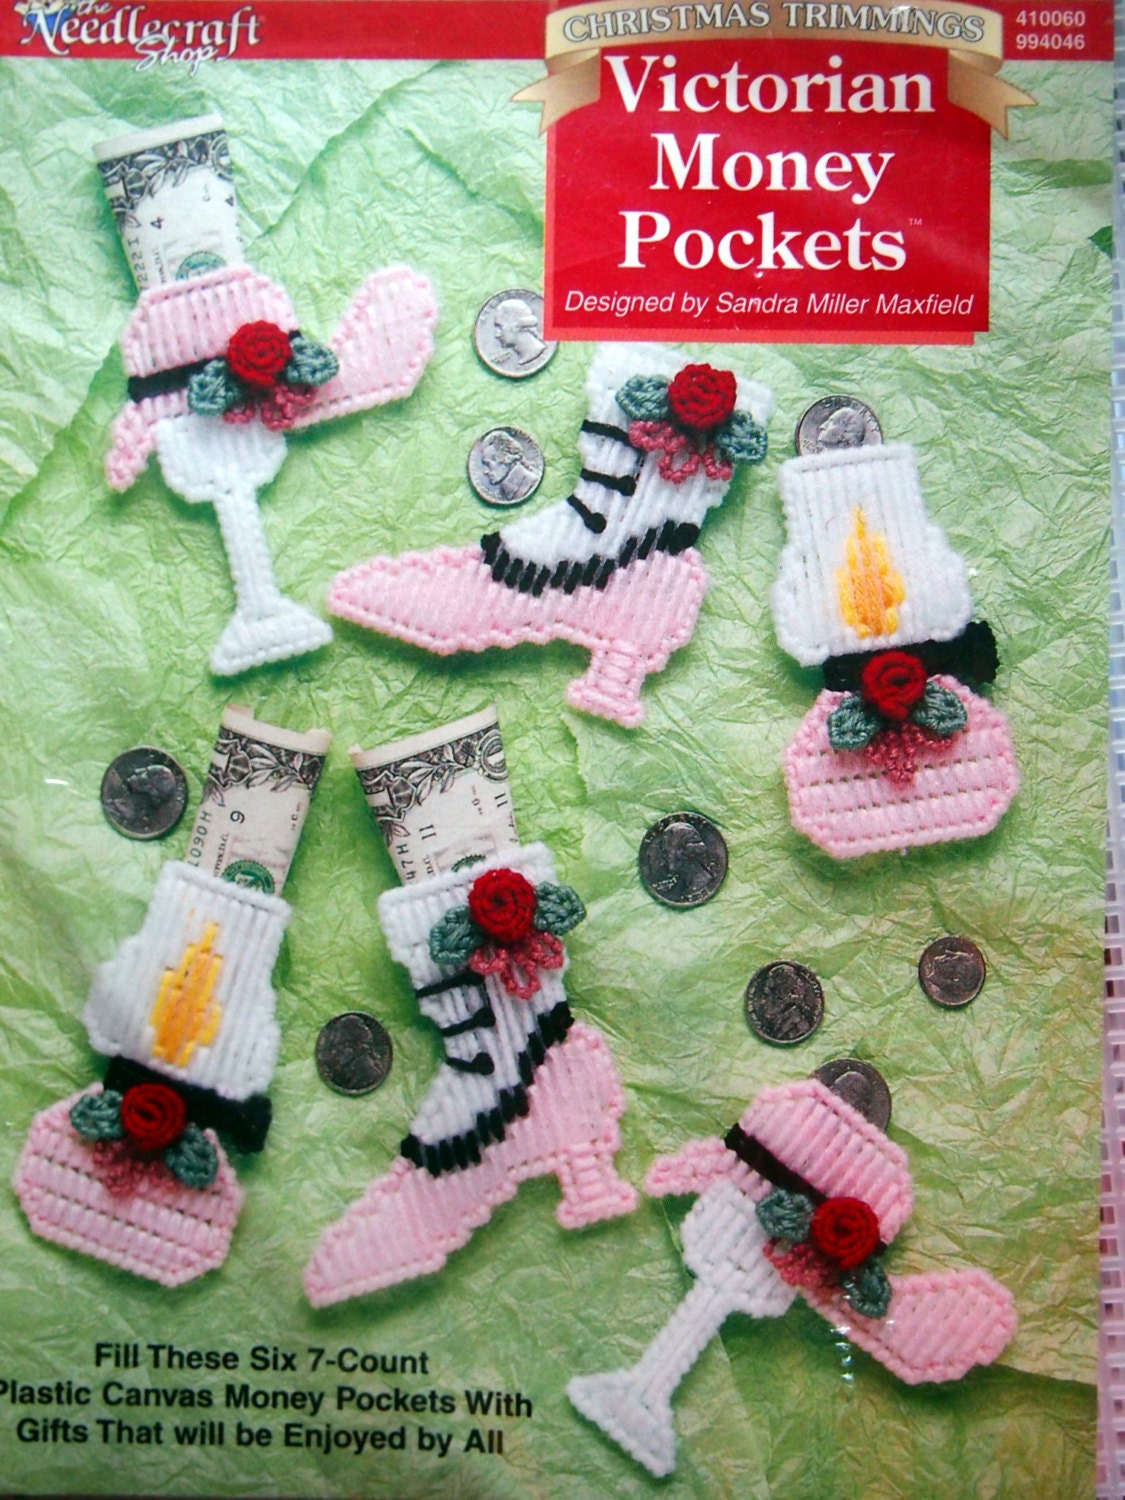 9621eca7f Victorian Money Pockets By Sandra Miller Maxfield And The